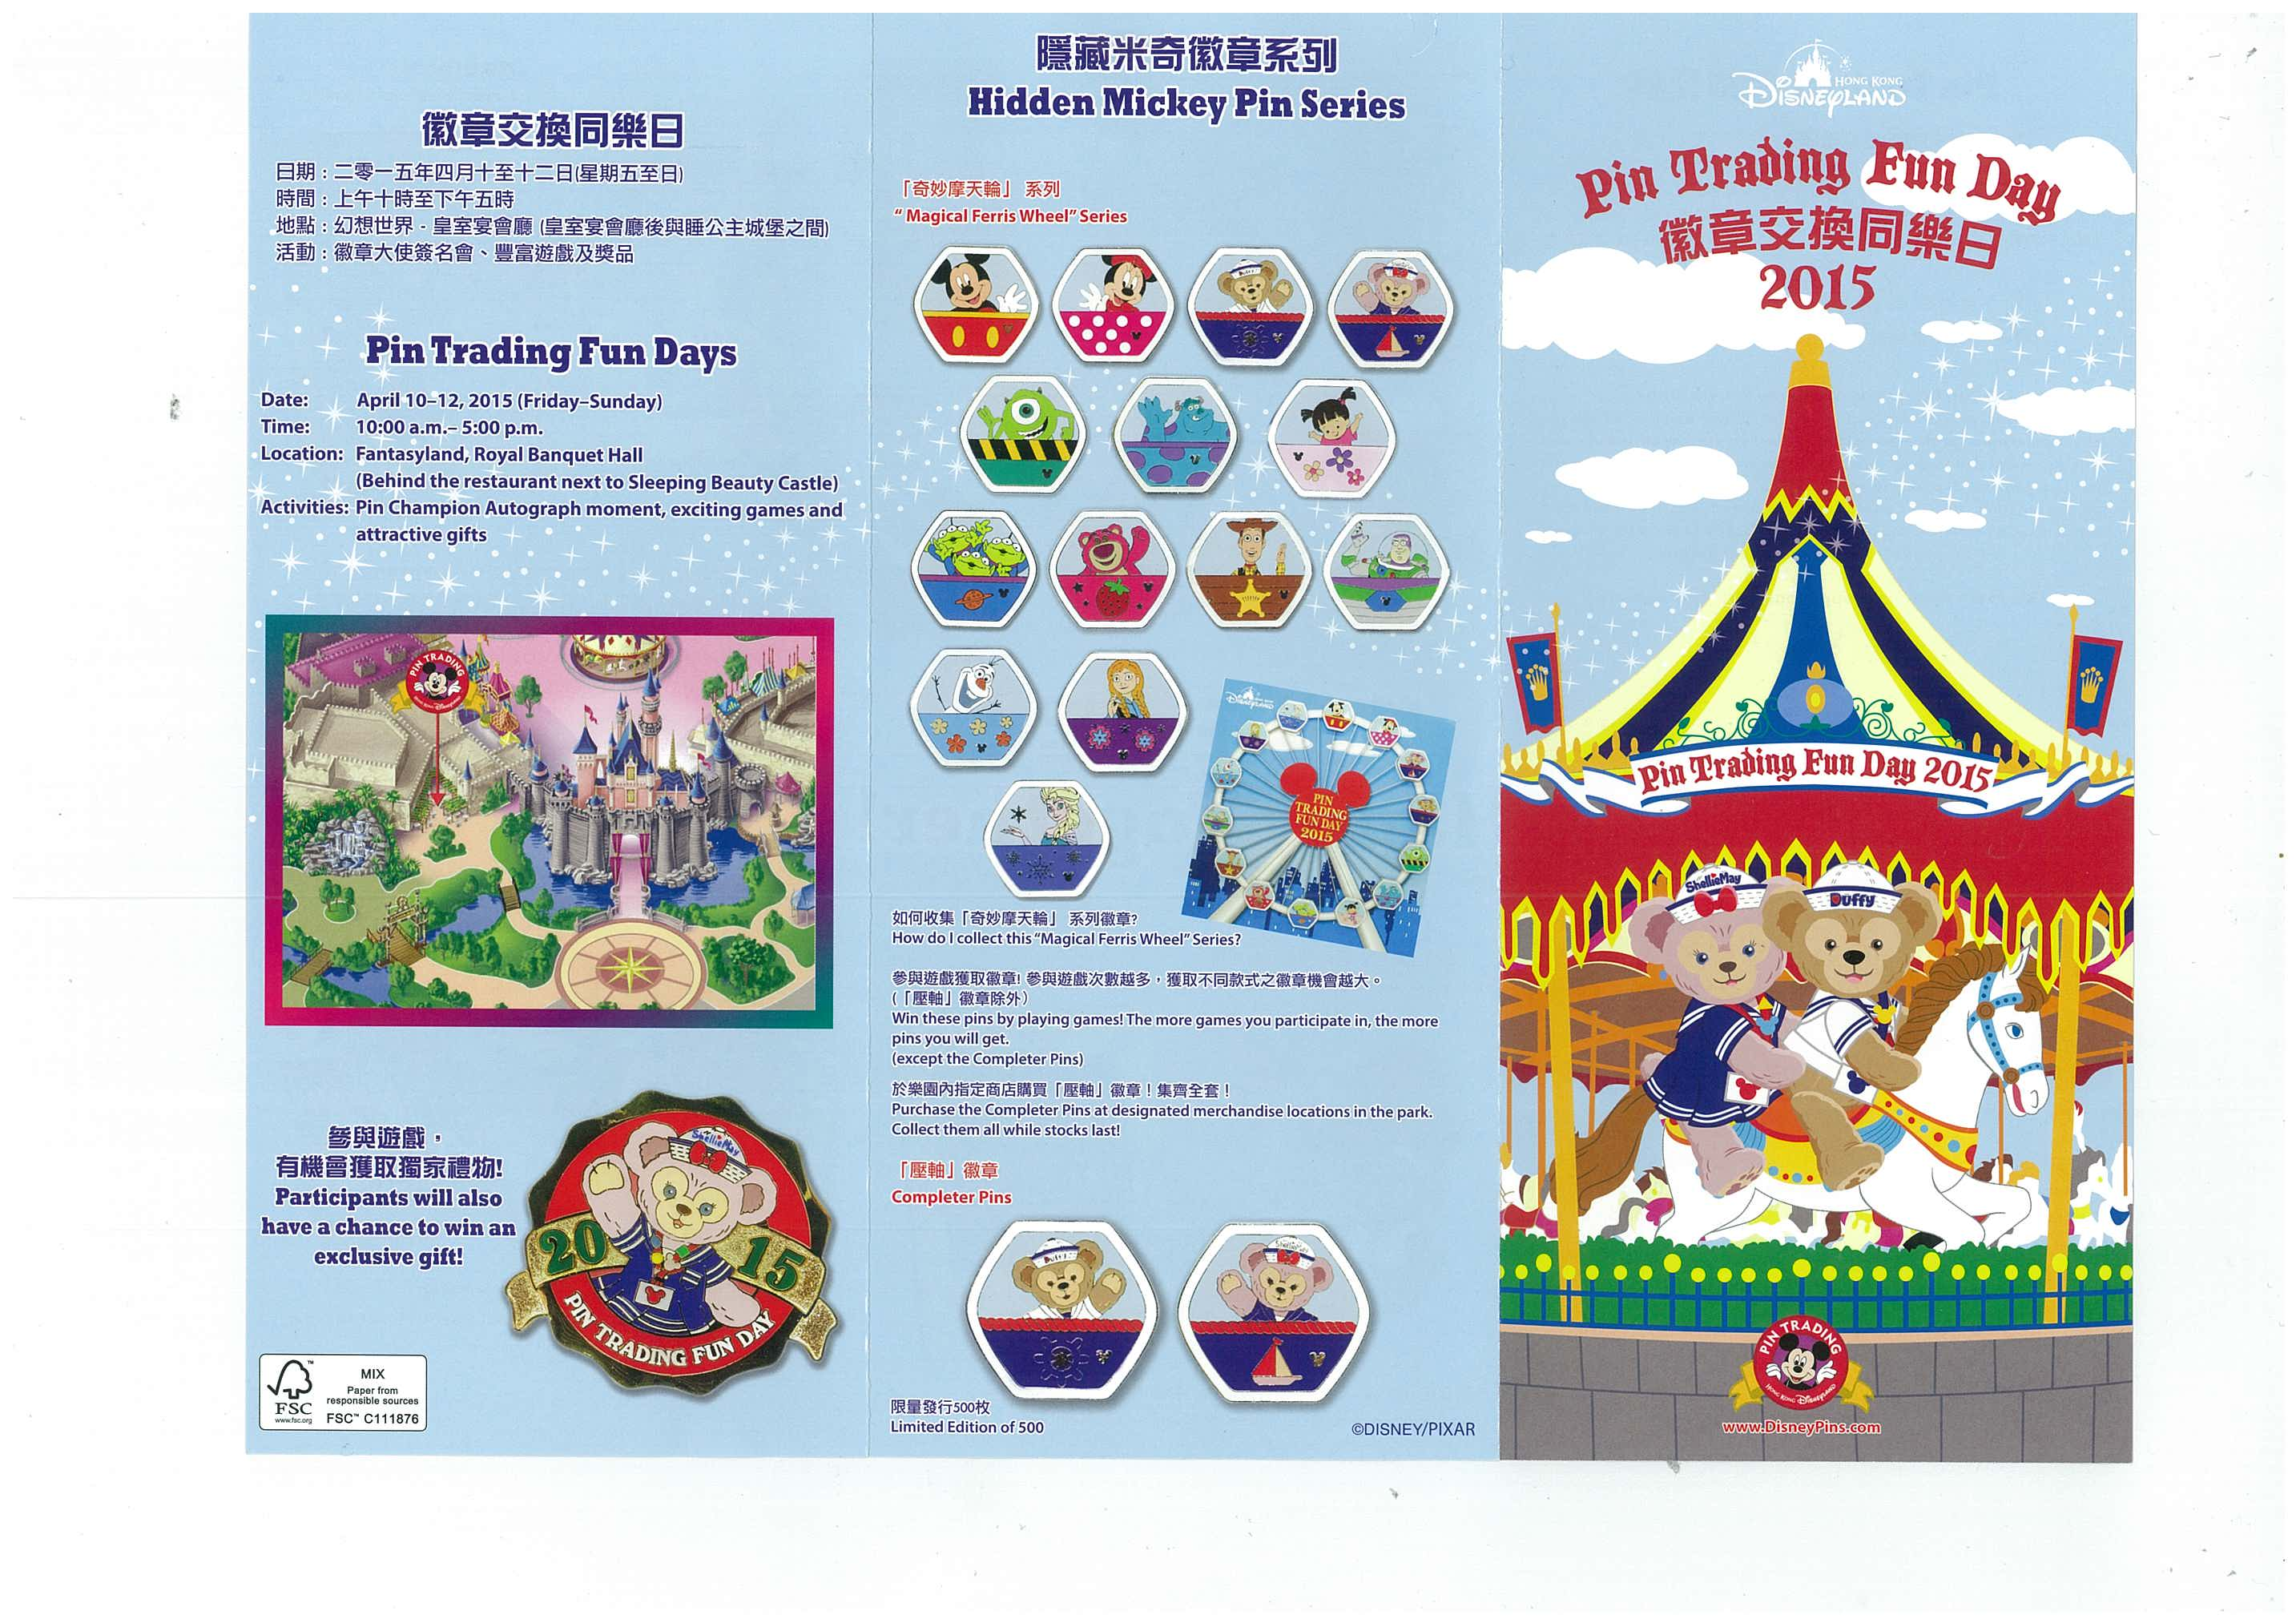 Hong Kong Disneyland Pin Trading Fun Day 2015 (April 10-12) #HKDL